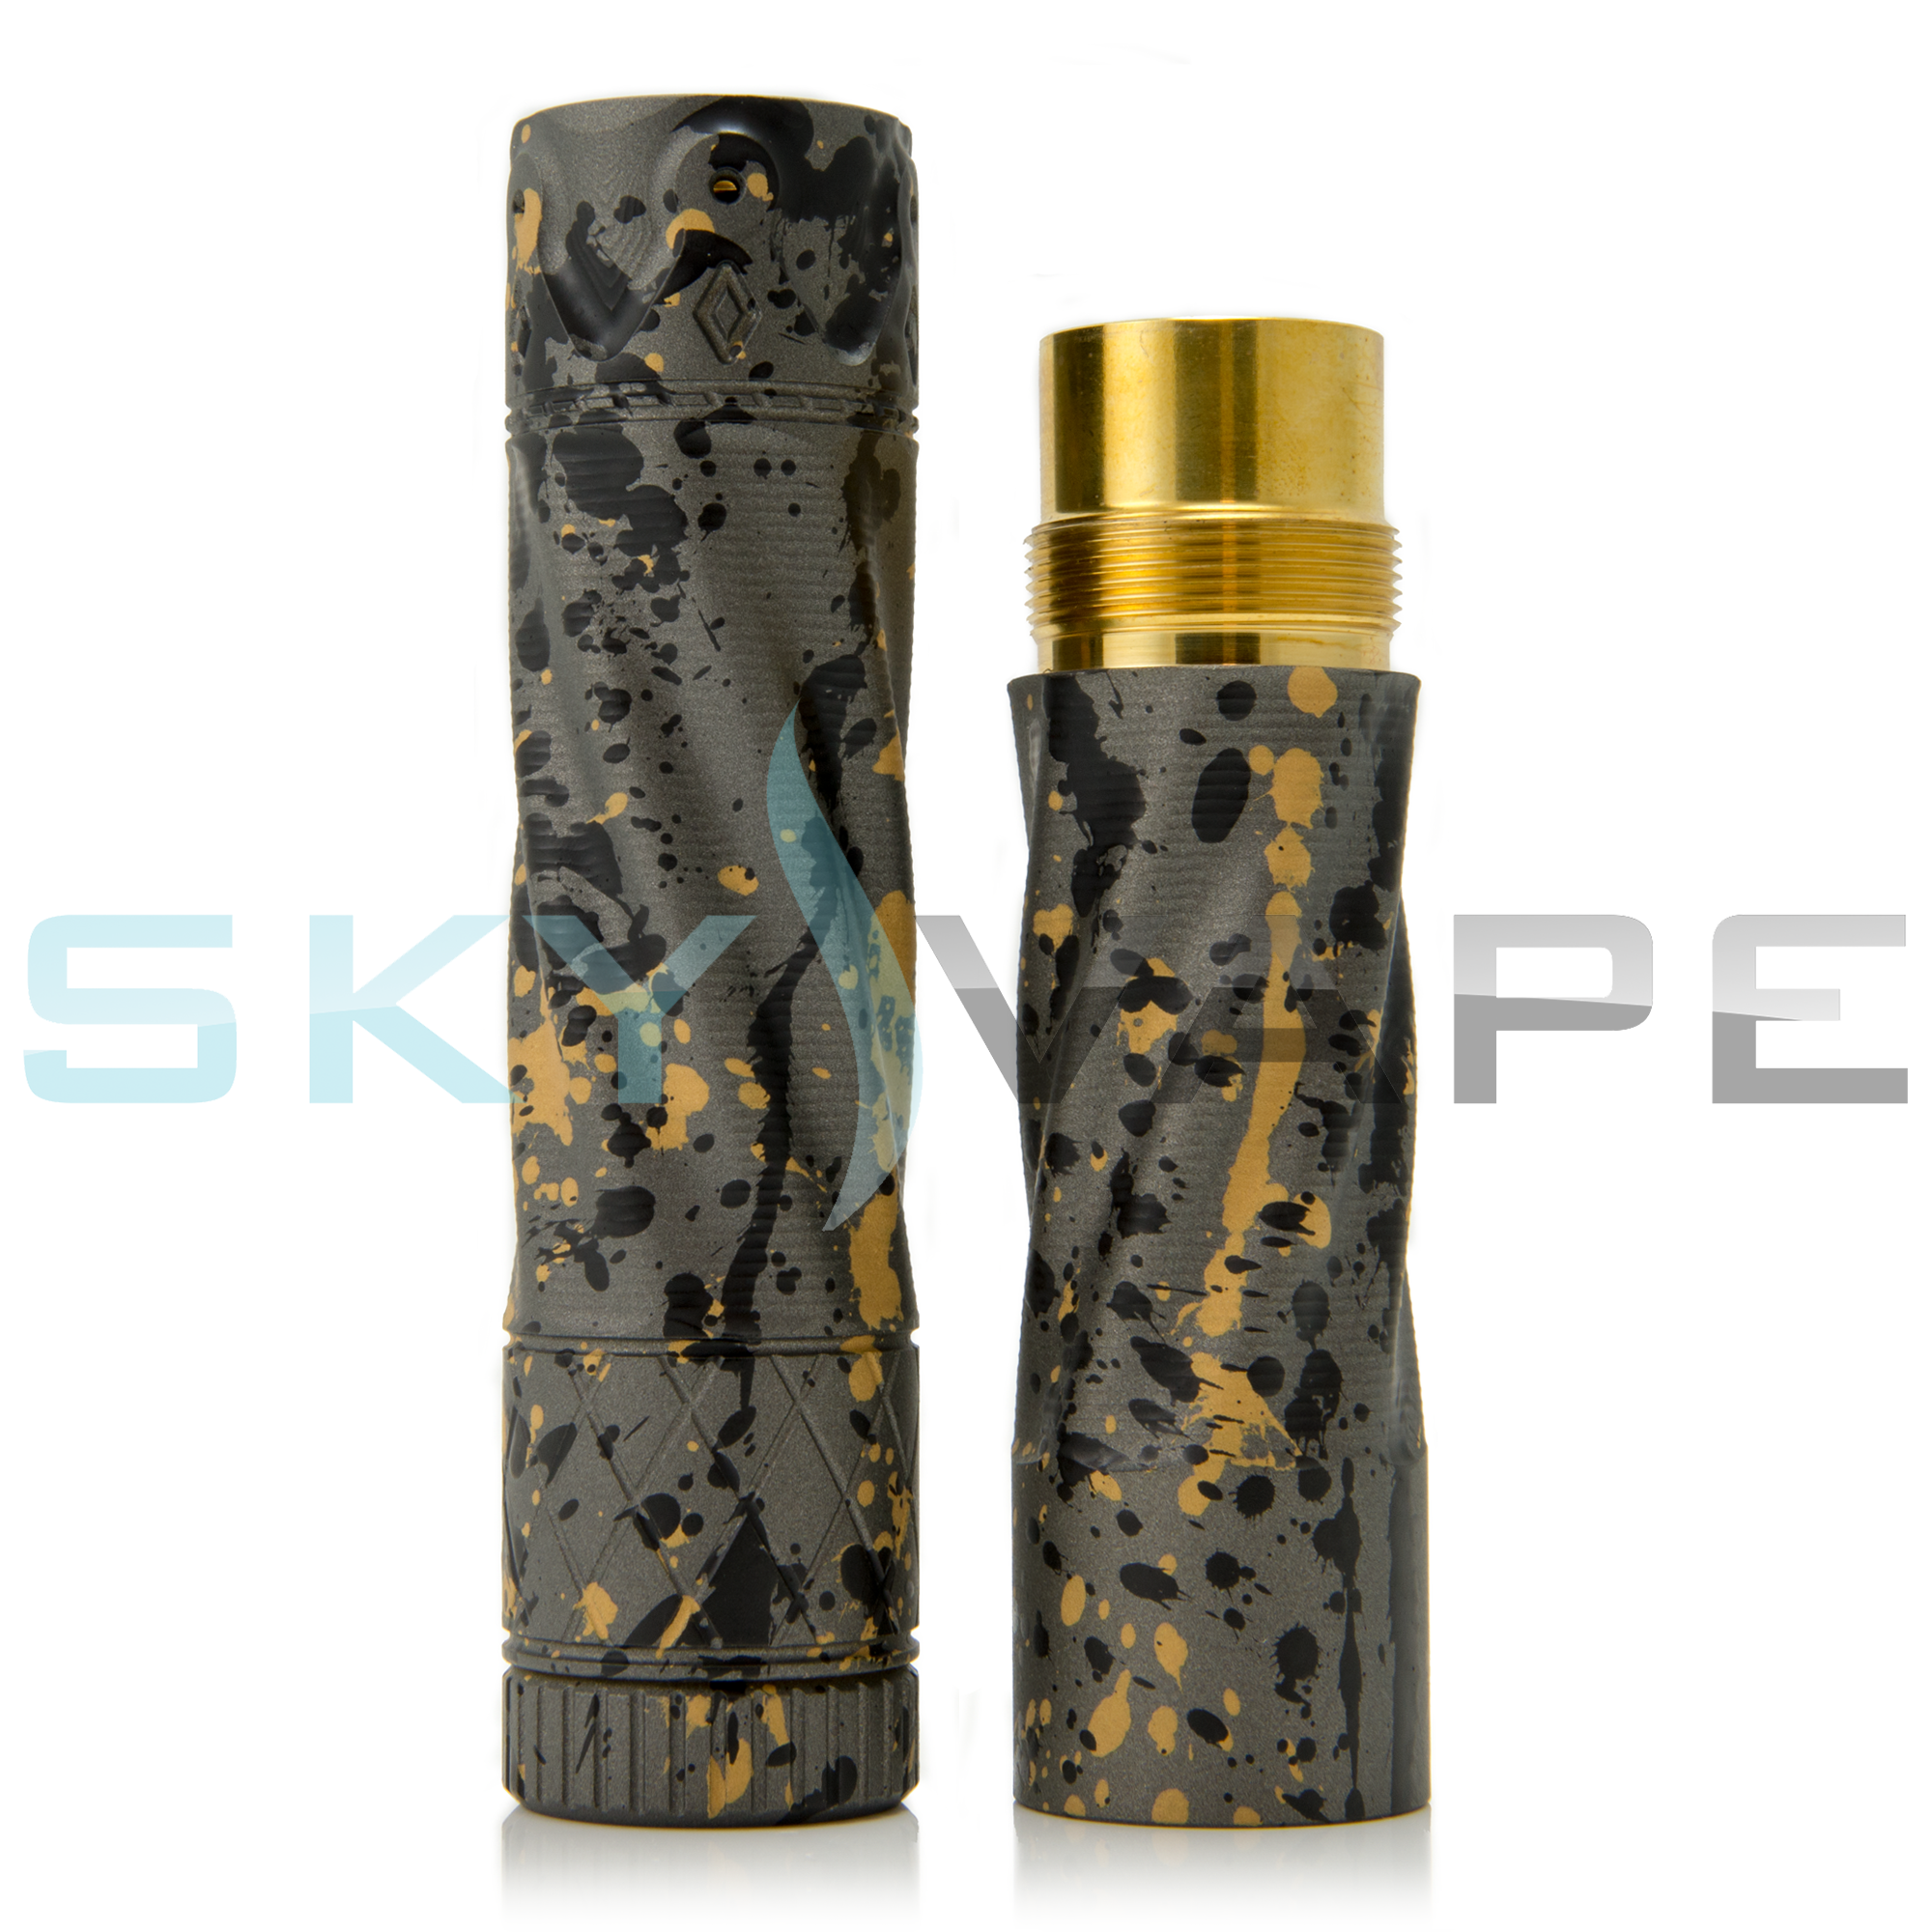 Purge Mods The King Grey and Gold Splatter Stacked Mod